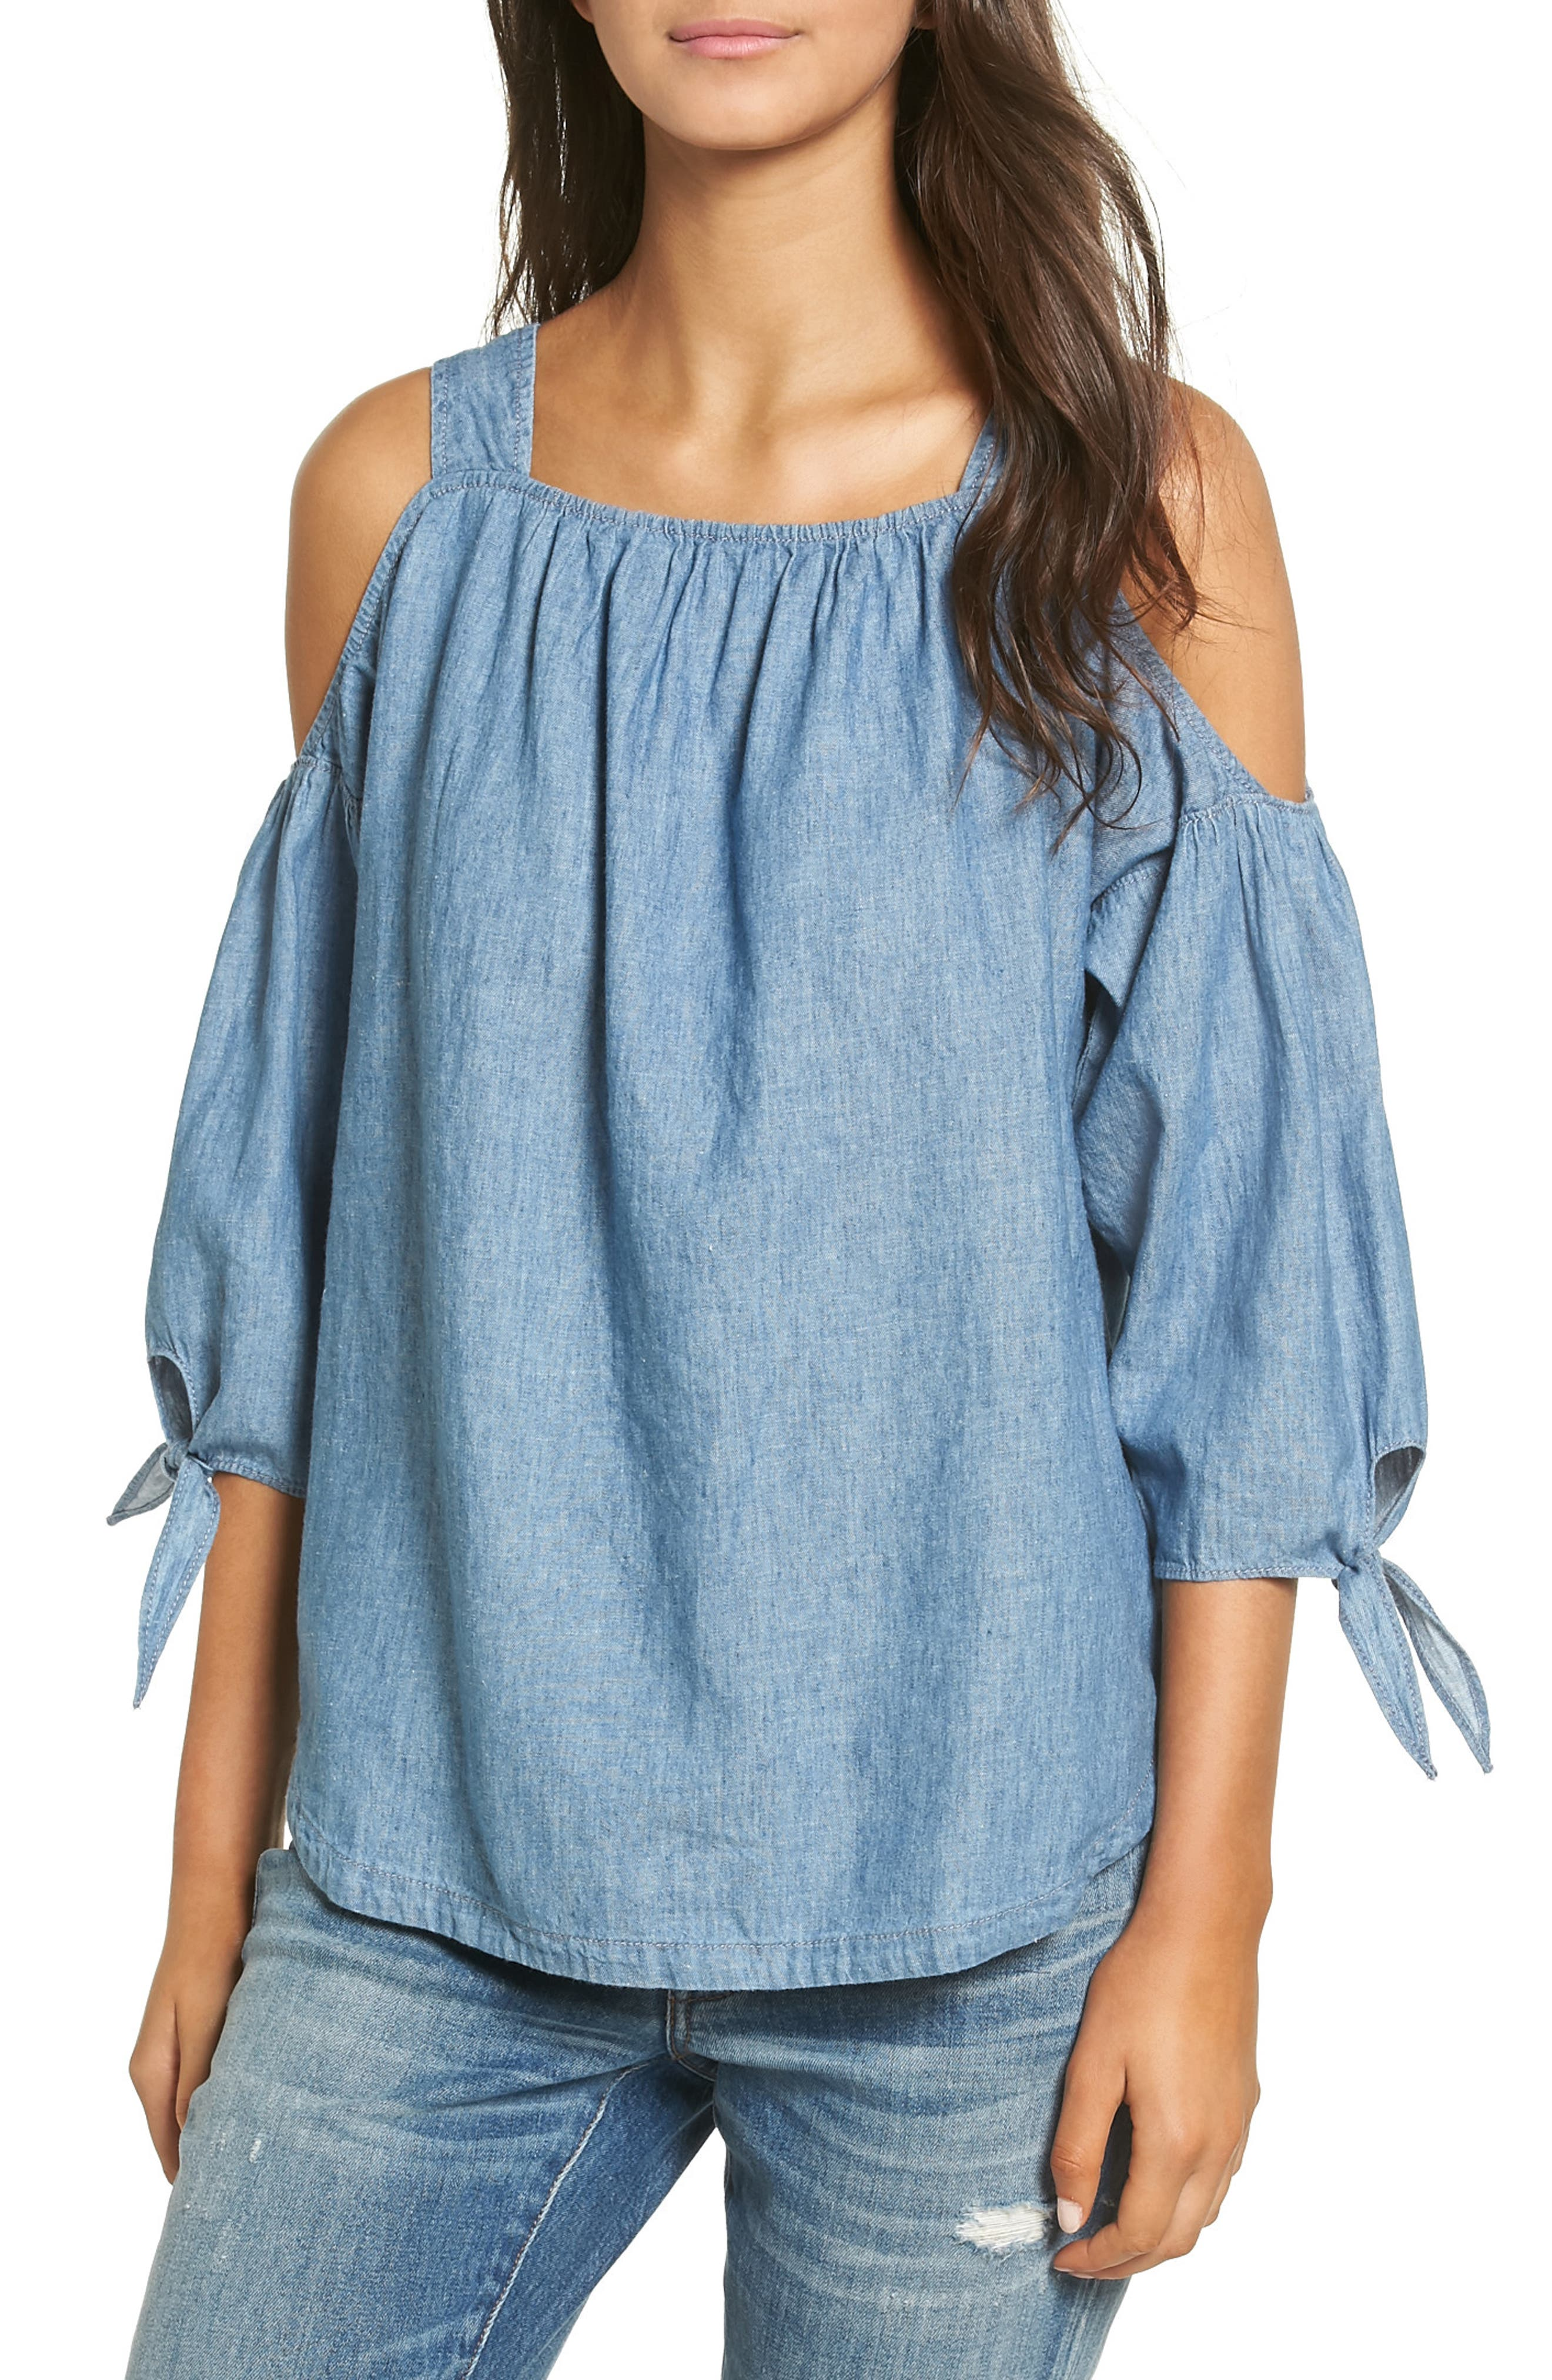 Alternate Image 1 Selected - Madewell Chambray Cold Shoulder Top